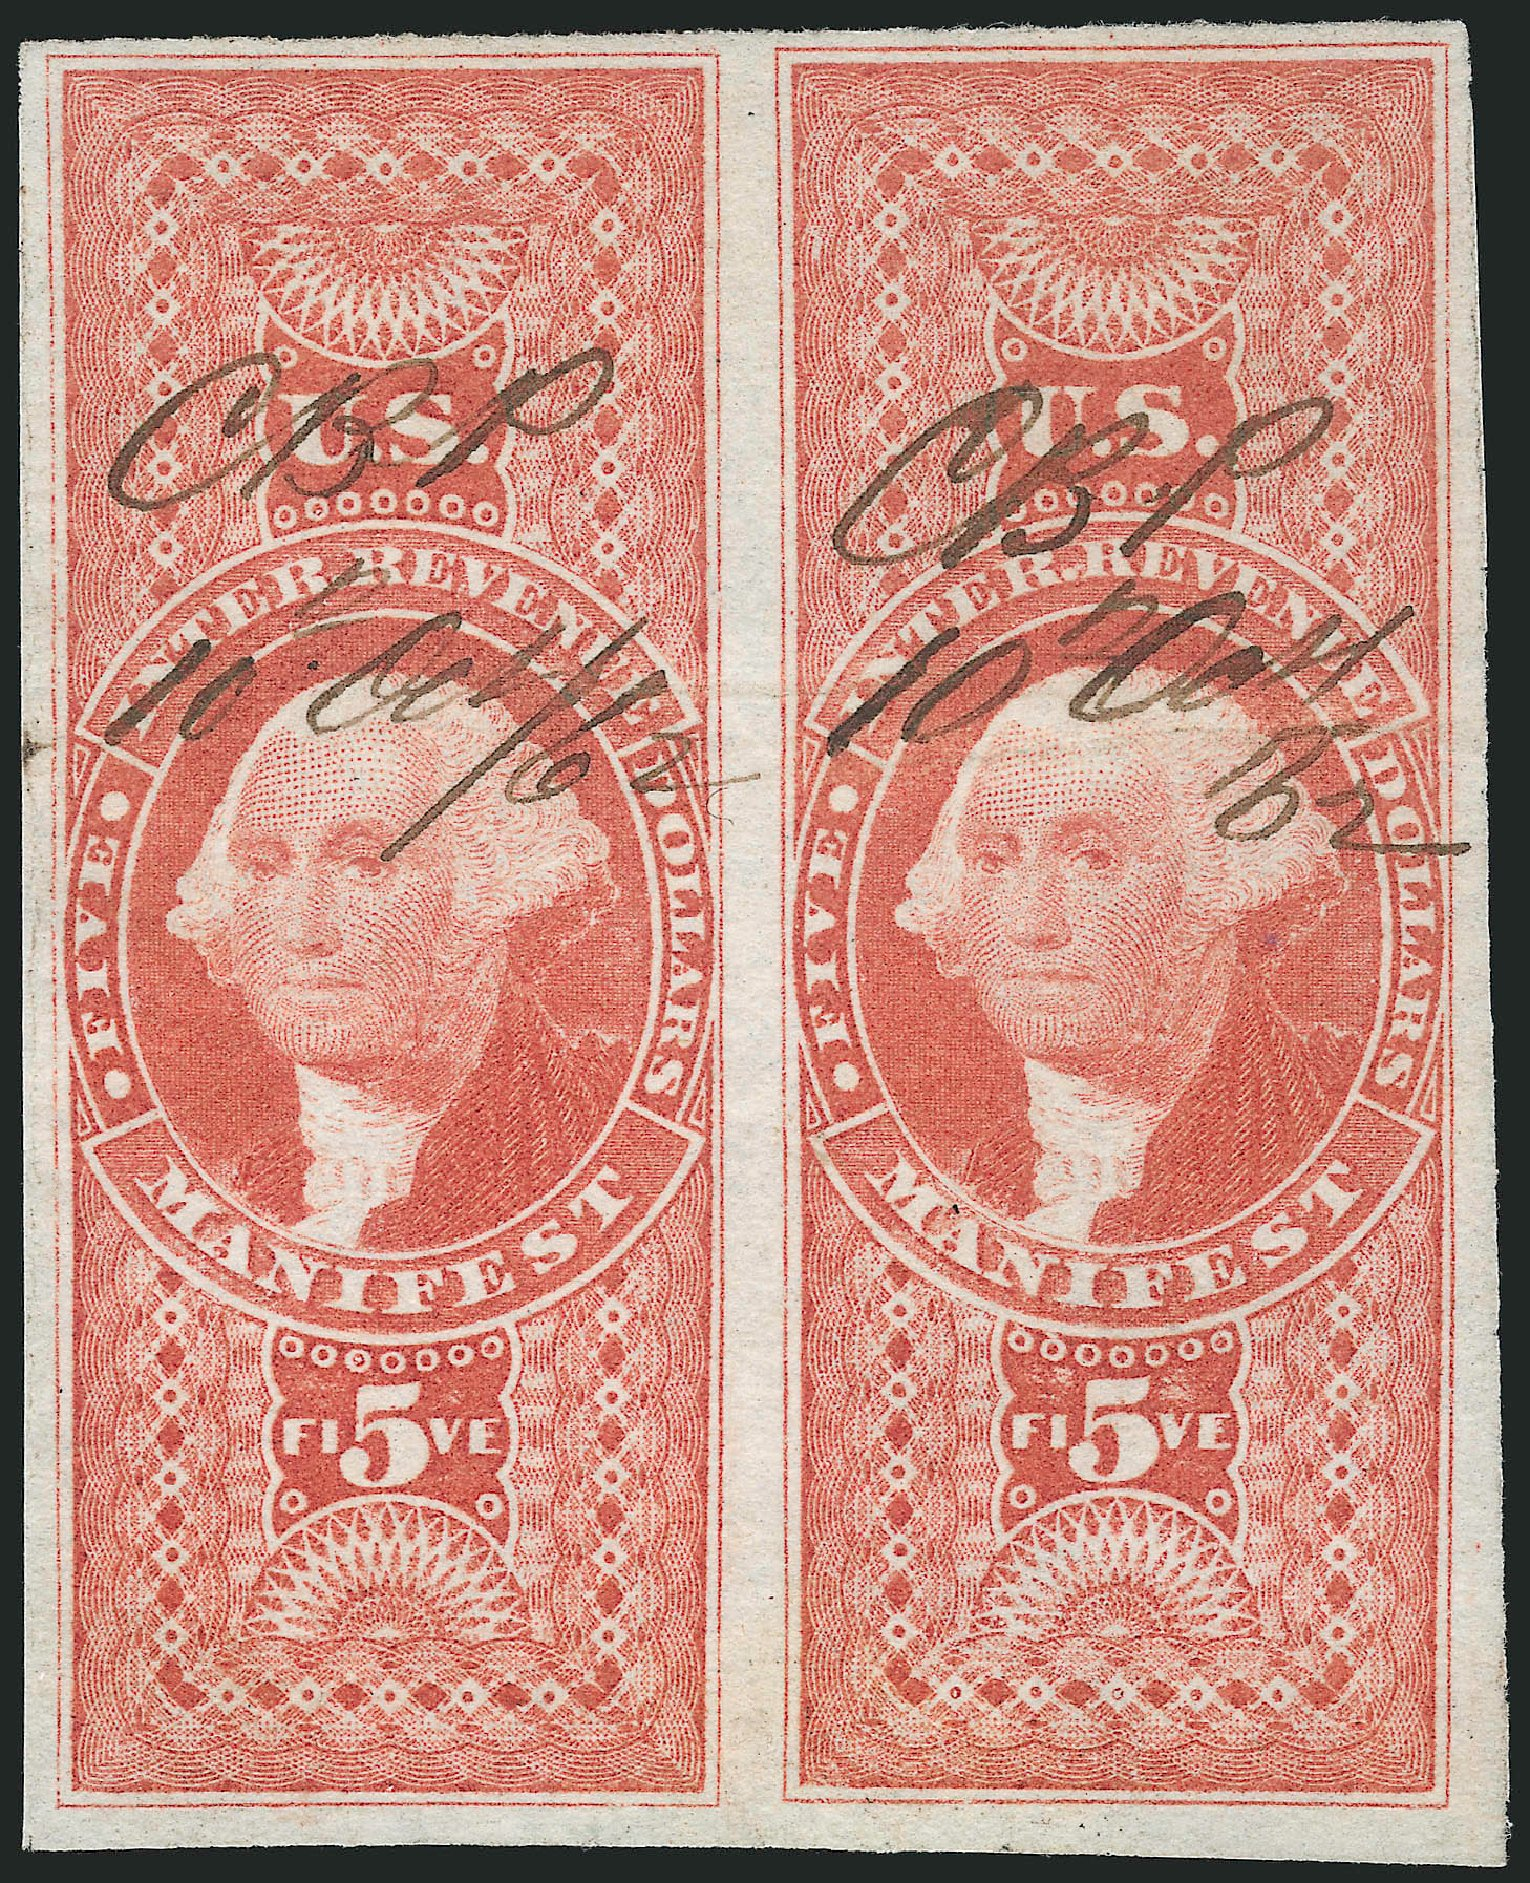 US Stamps Values Scott R90 - 1862 US$5.00 Revenue Manifest. Robert Siegel Auction Galleries, Dec 2014, Sale 1089, Lot 256